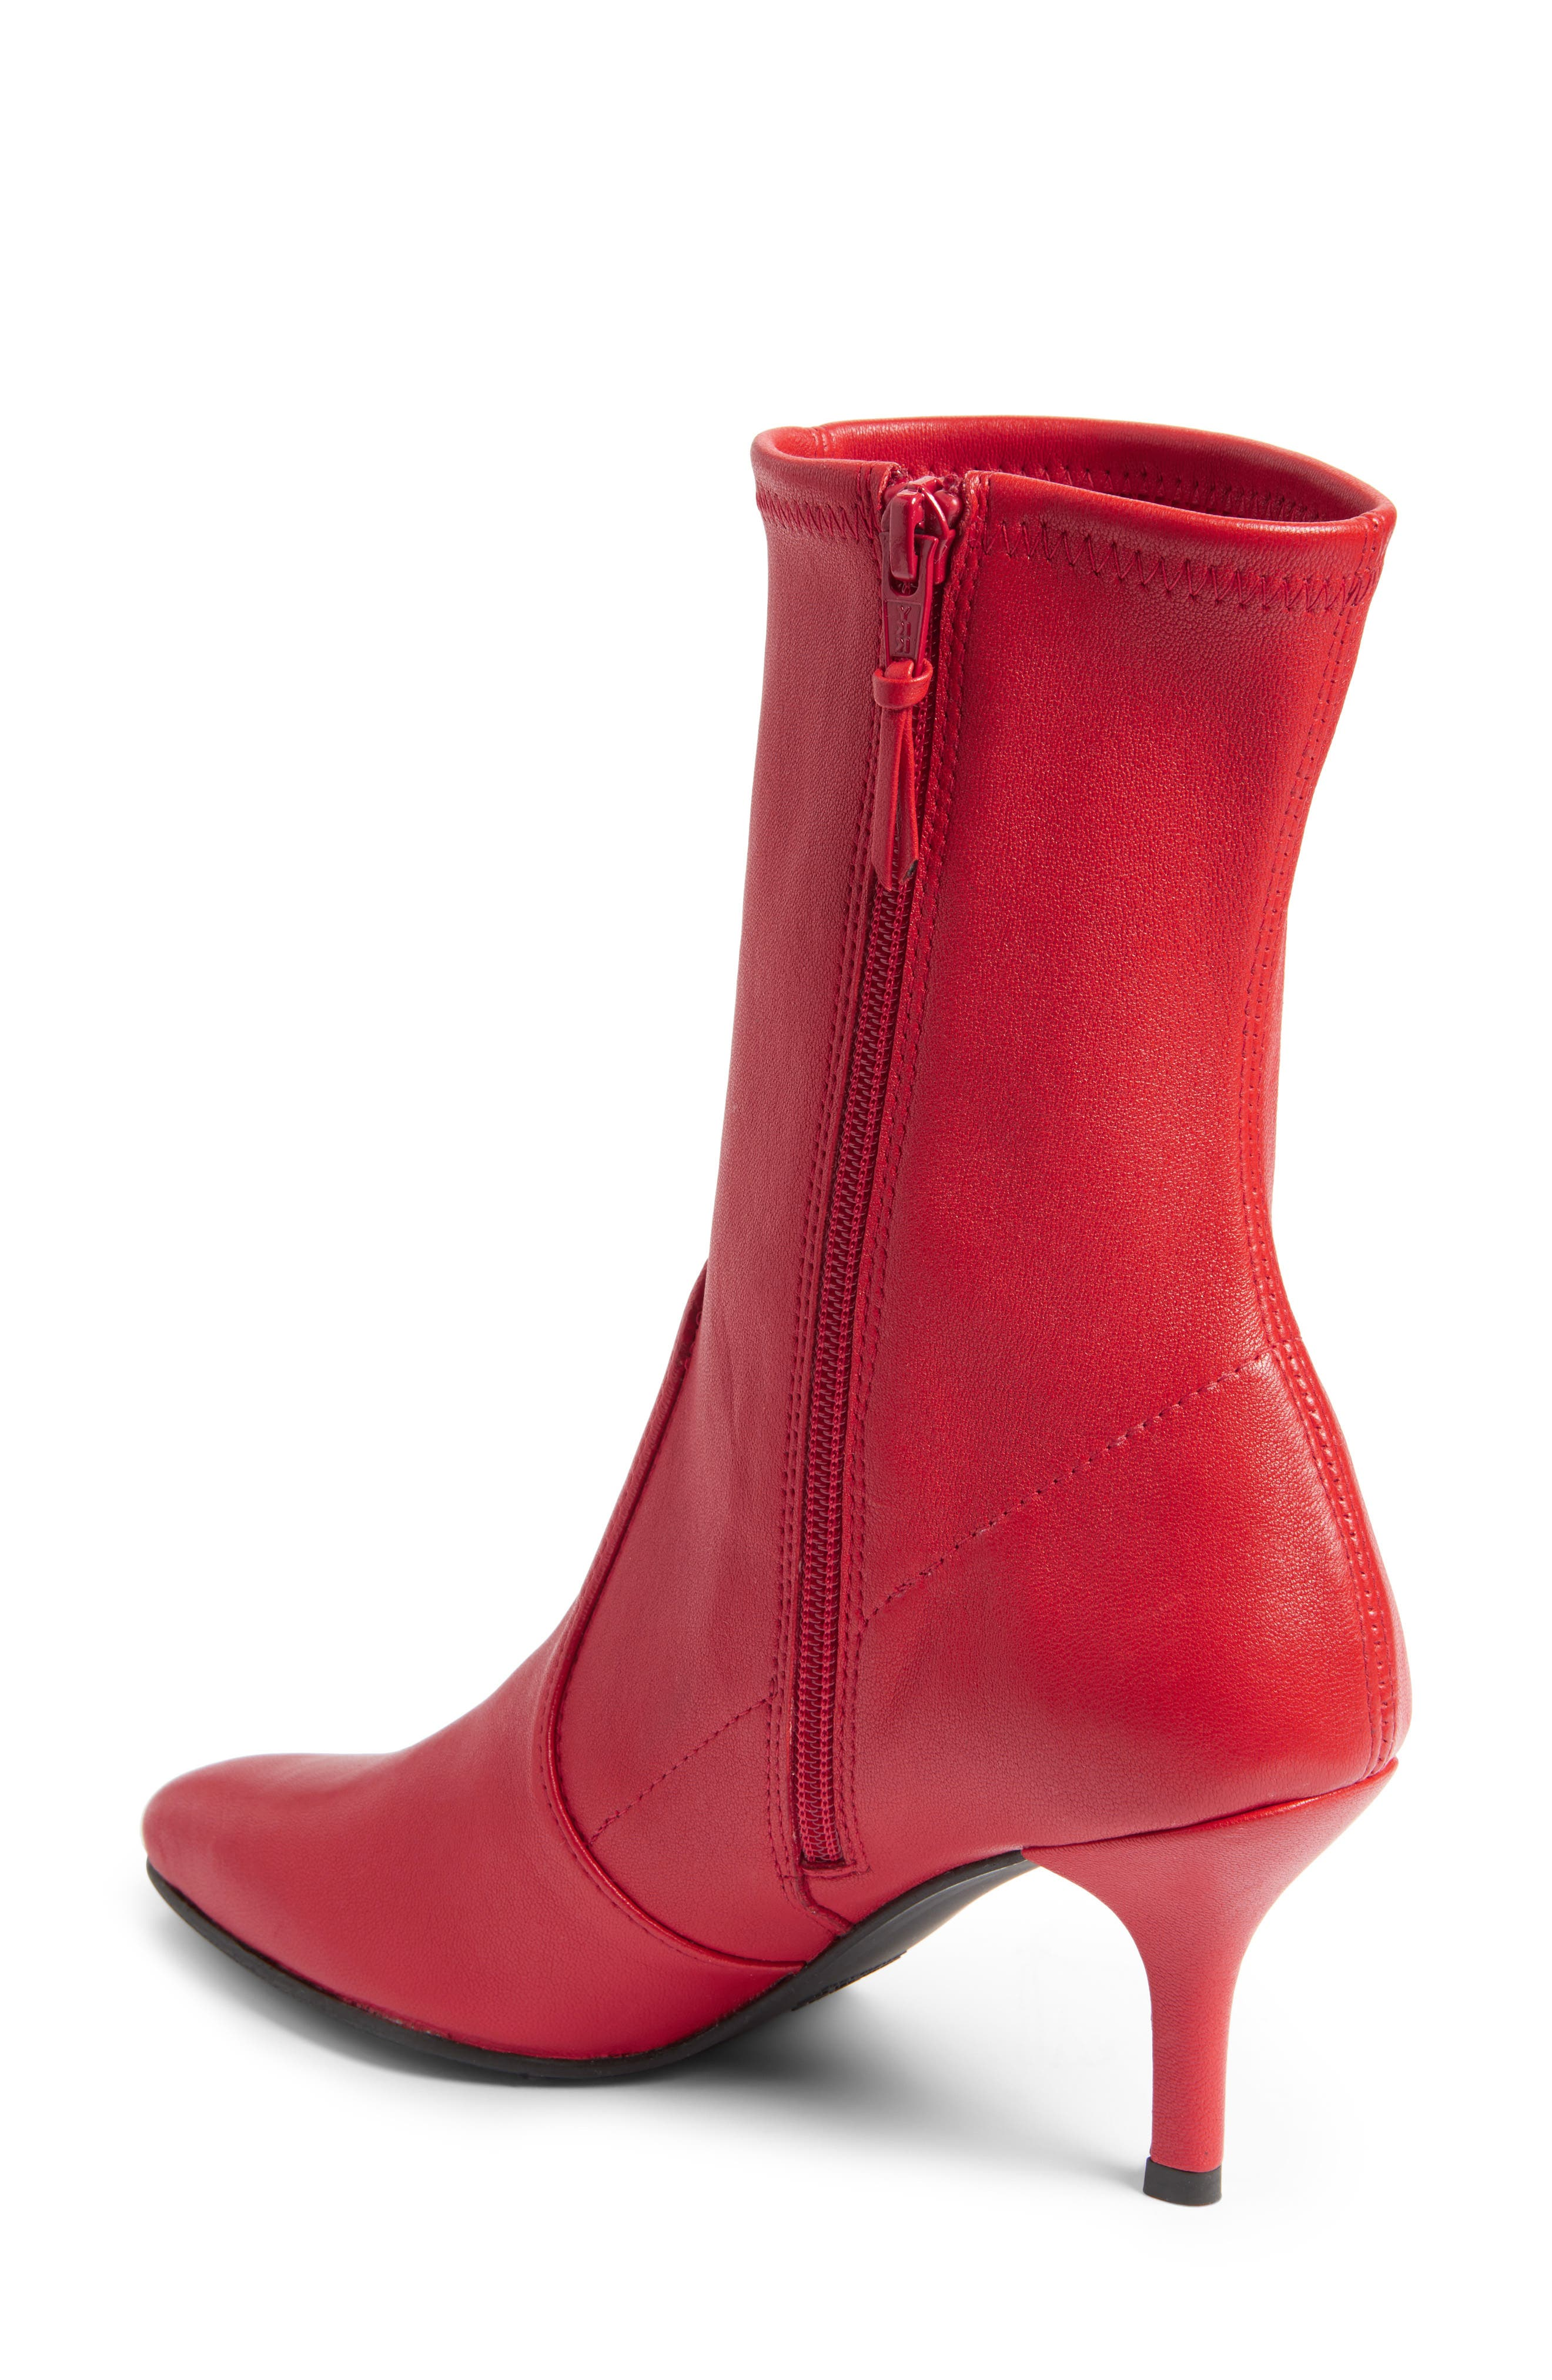 Cling Stretch Bootie,                             Alternate thumbnail 14, color,